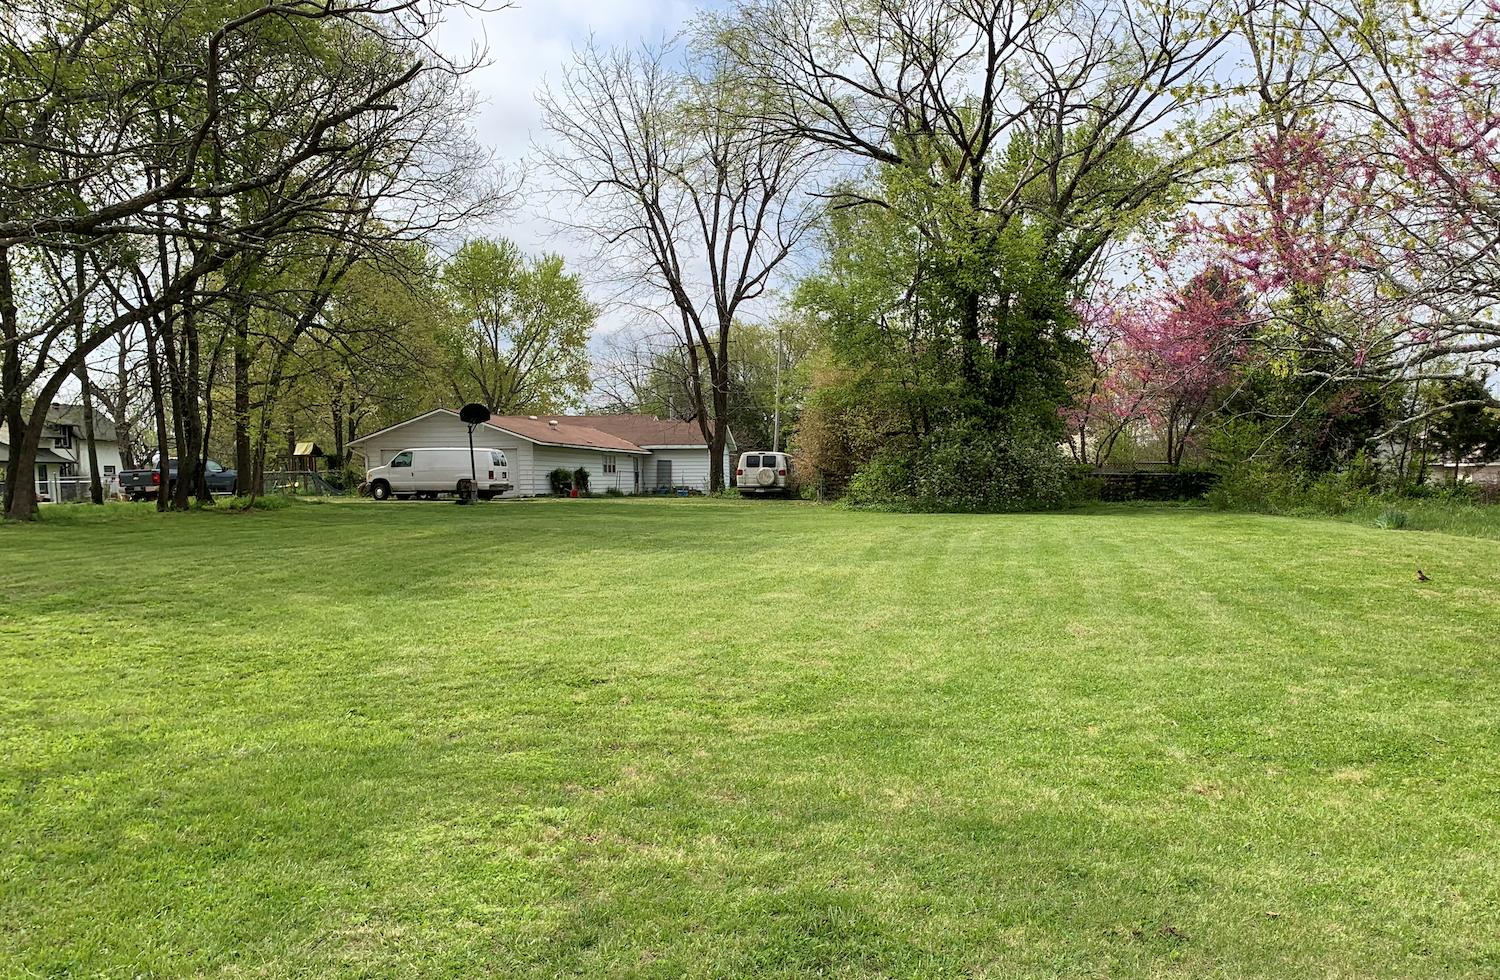 Lot for sale in Small Town